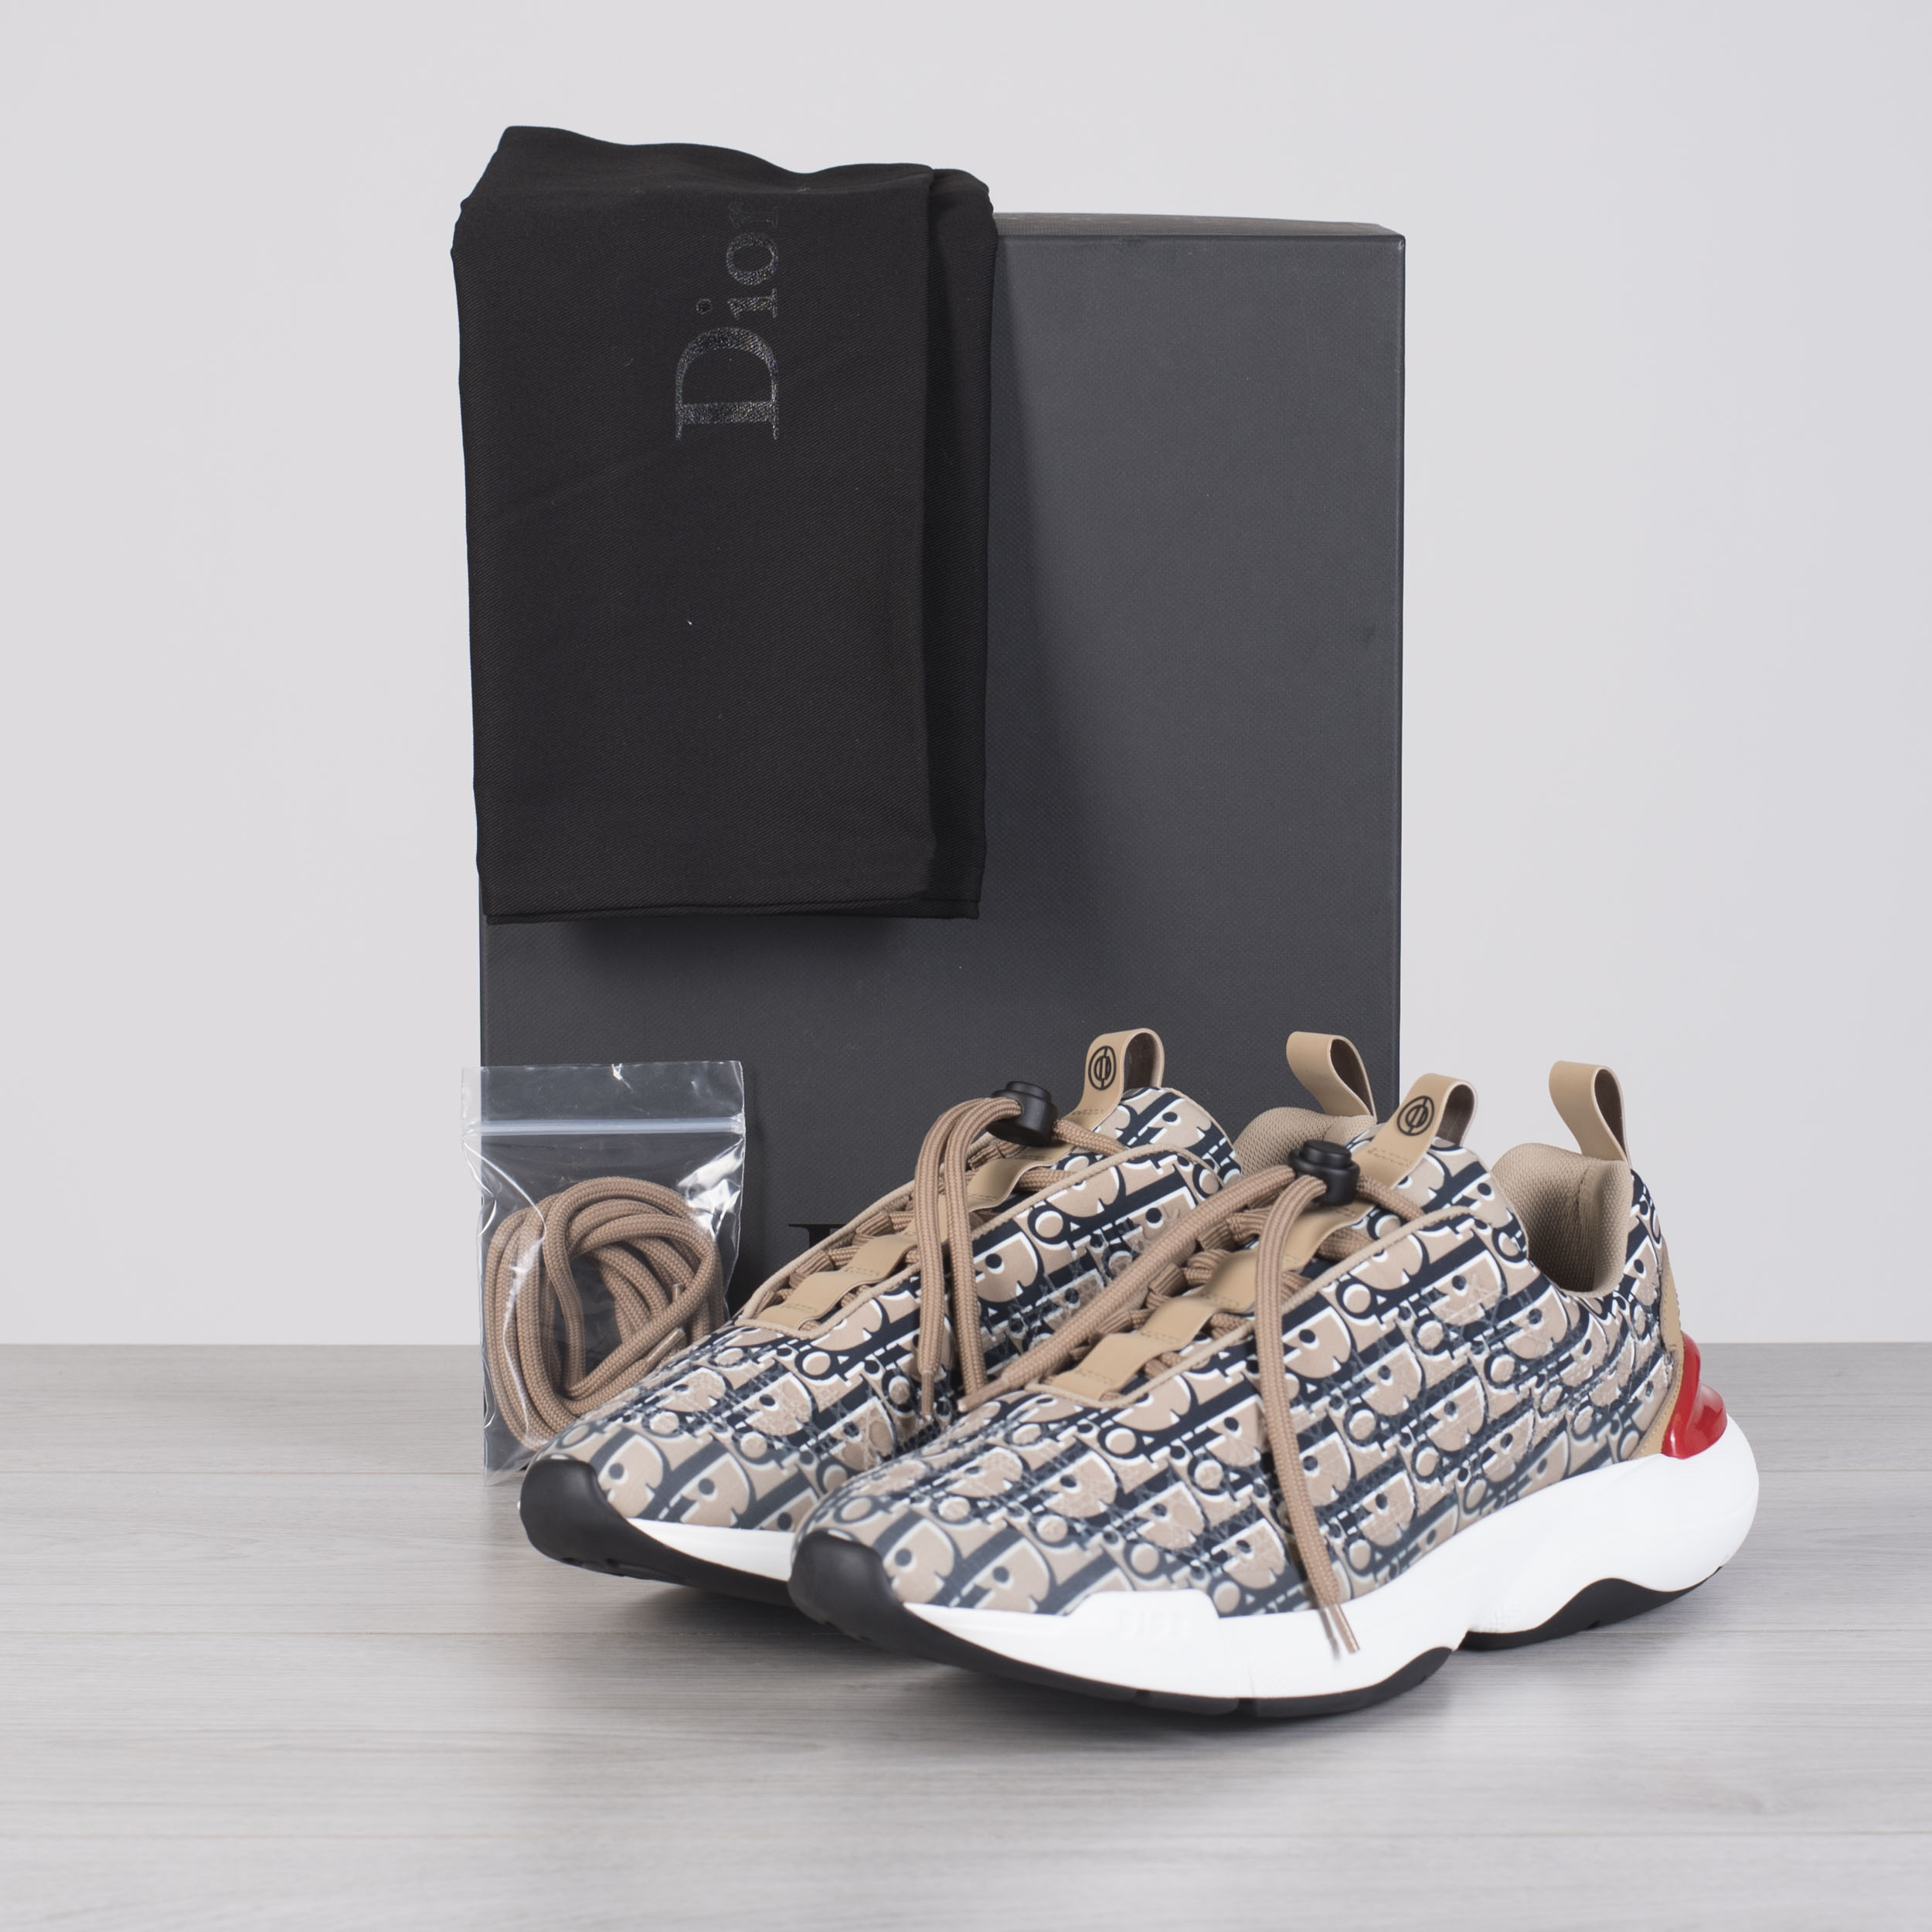 65b989ff04 DIOR HOMME 1050$ Beige Dior Oblique 'B24' Sneakers With Cannage ...